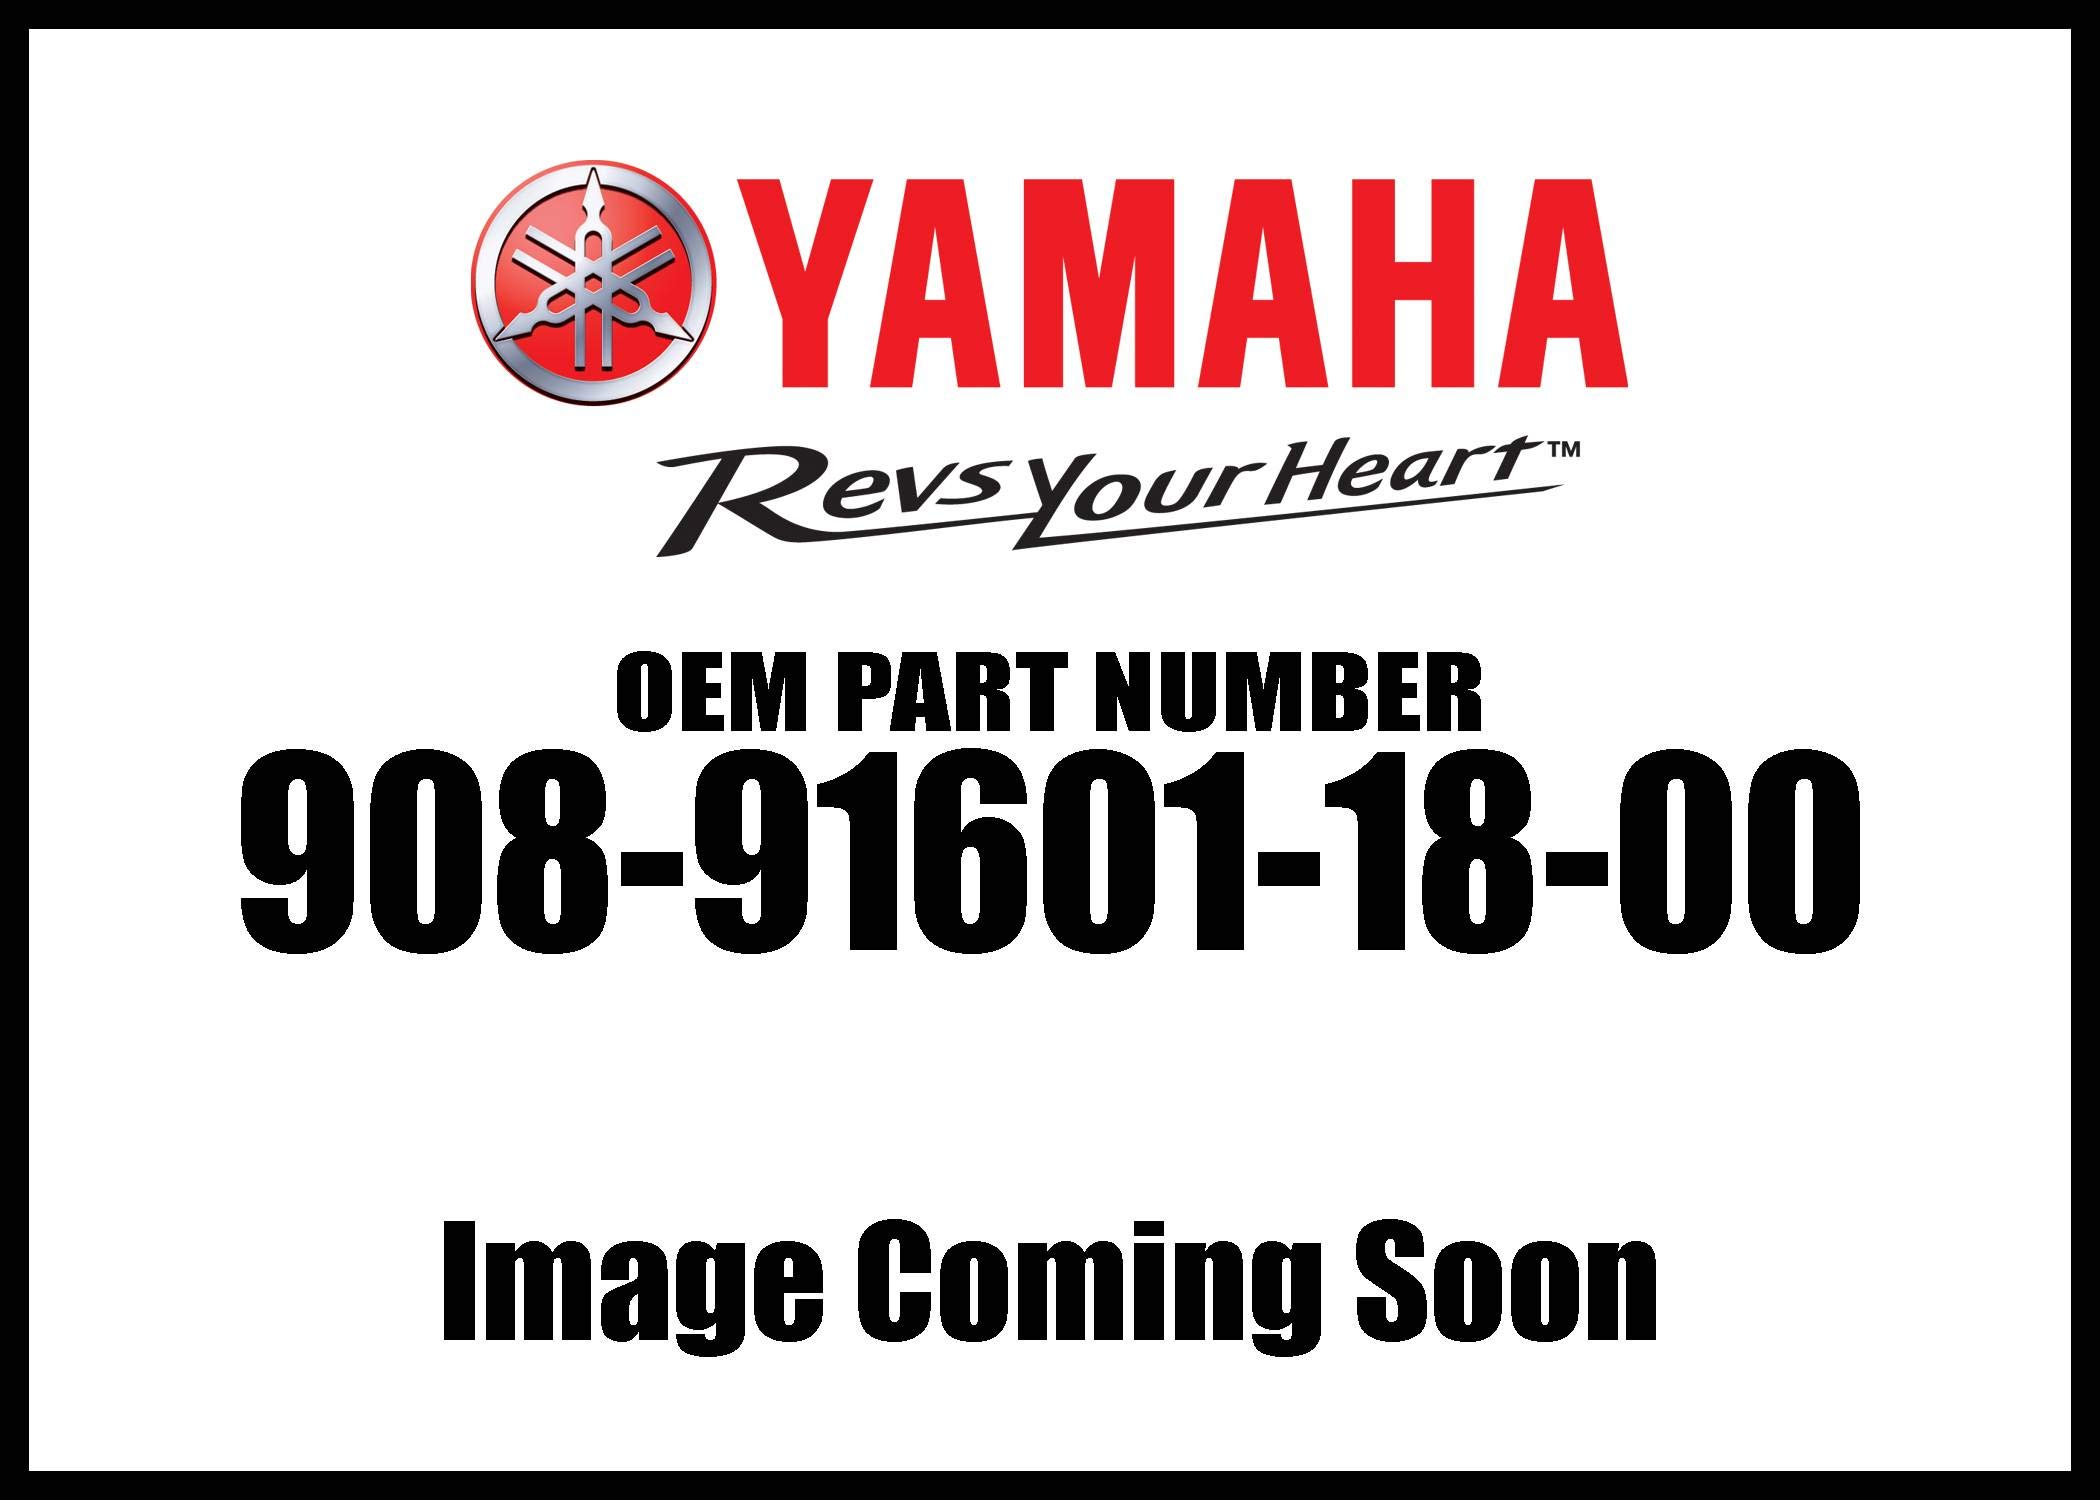 Yamaha Yxz Wire Clip Kit 908-91601-18-00 New Oem